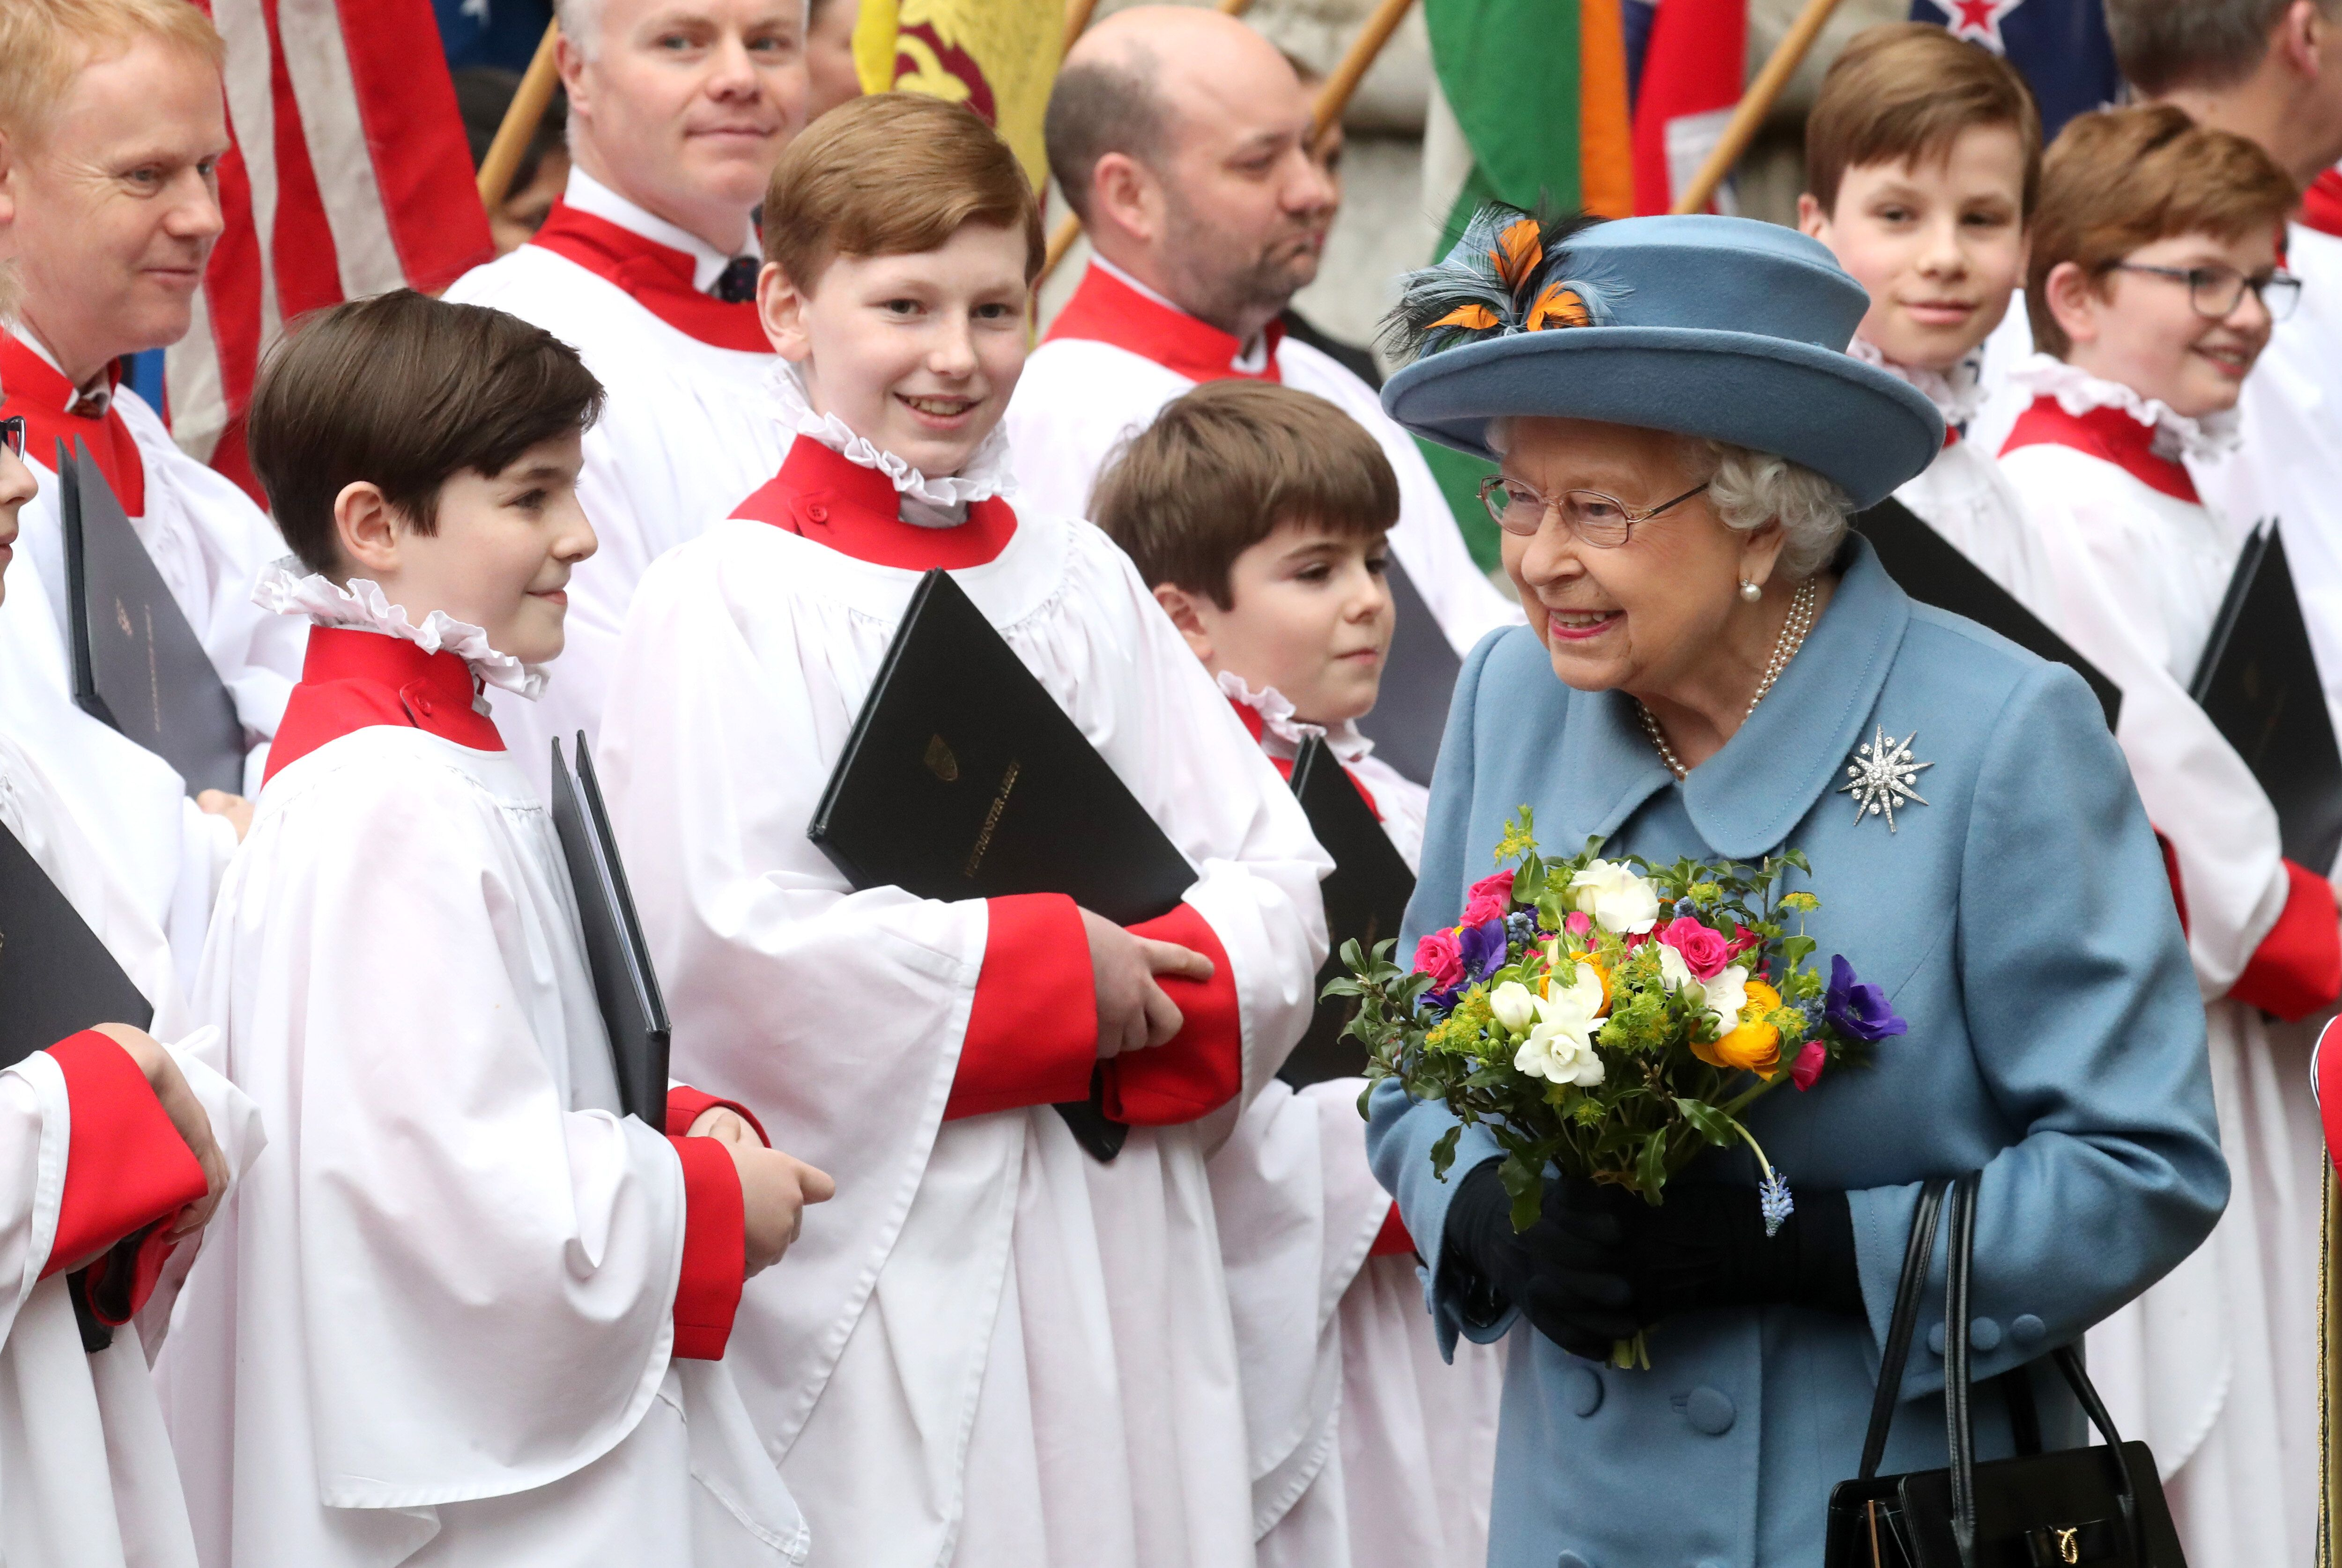 Queen Elizabeth II departs the Commonwealth Day Service 2020 at Westminster Abbey on March 9 in London.